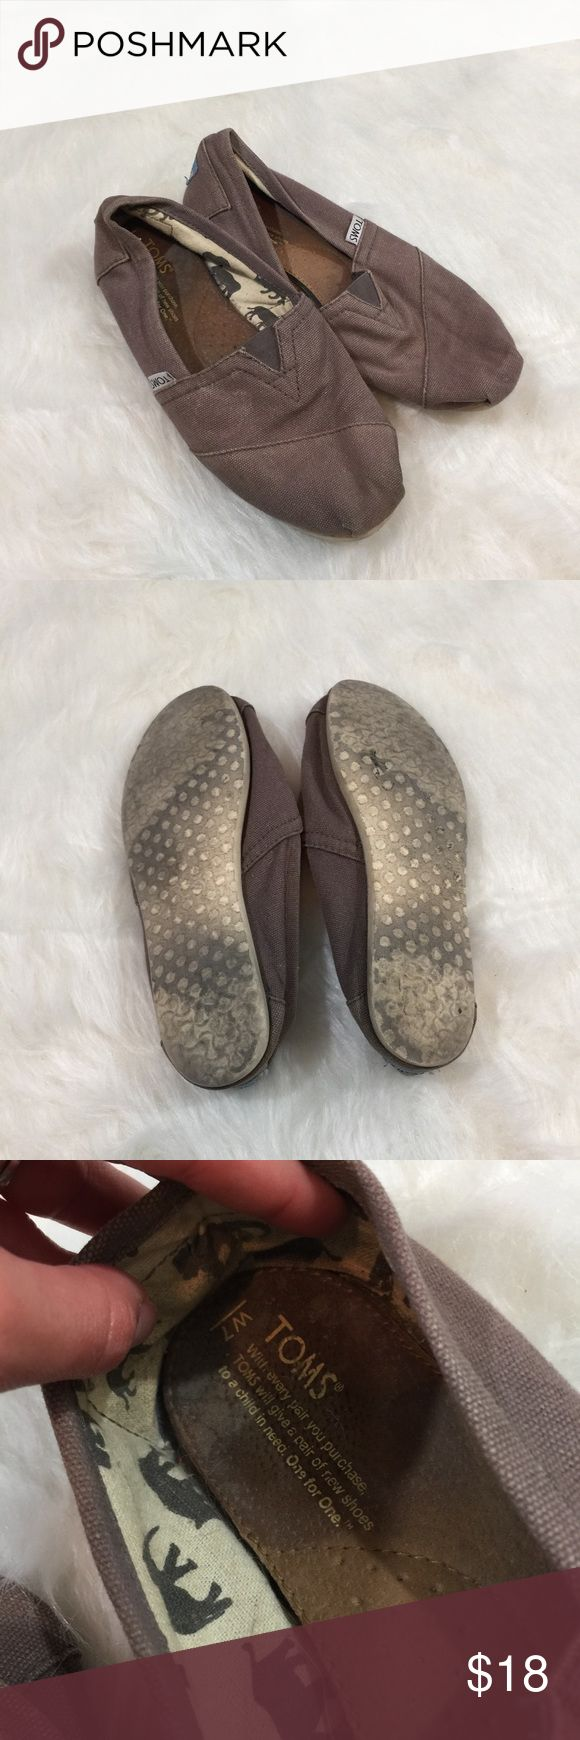 Toms Taupe Flat This awesome Flat is in good condition! Still has tons of life! Size 7. Smoke and pet free home! Reasonable offers accepted! No trades. TOMS Shoes Flats & Loafers